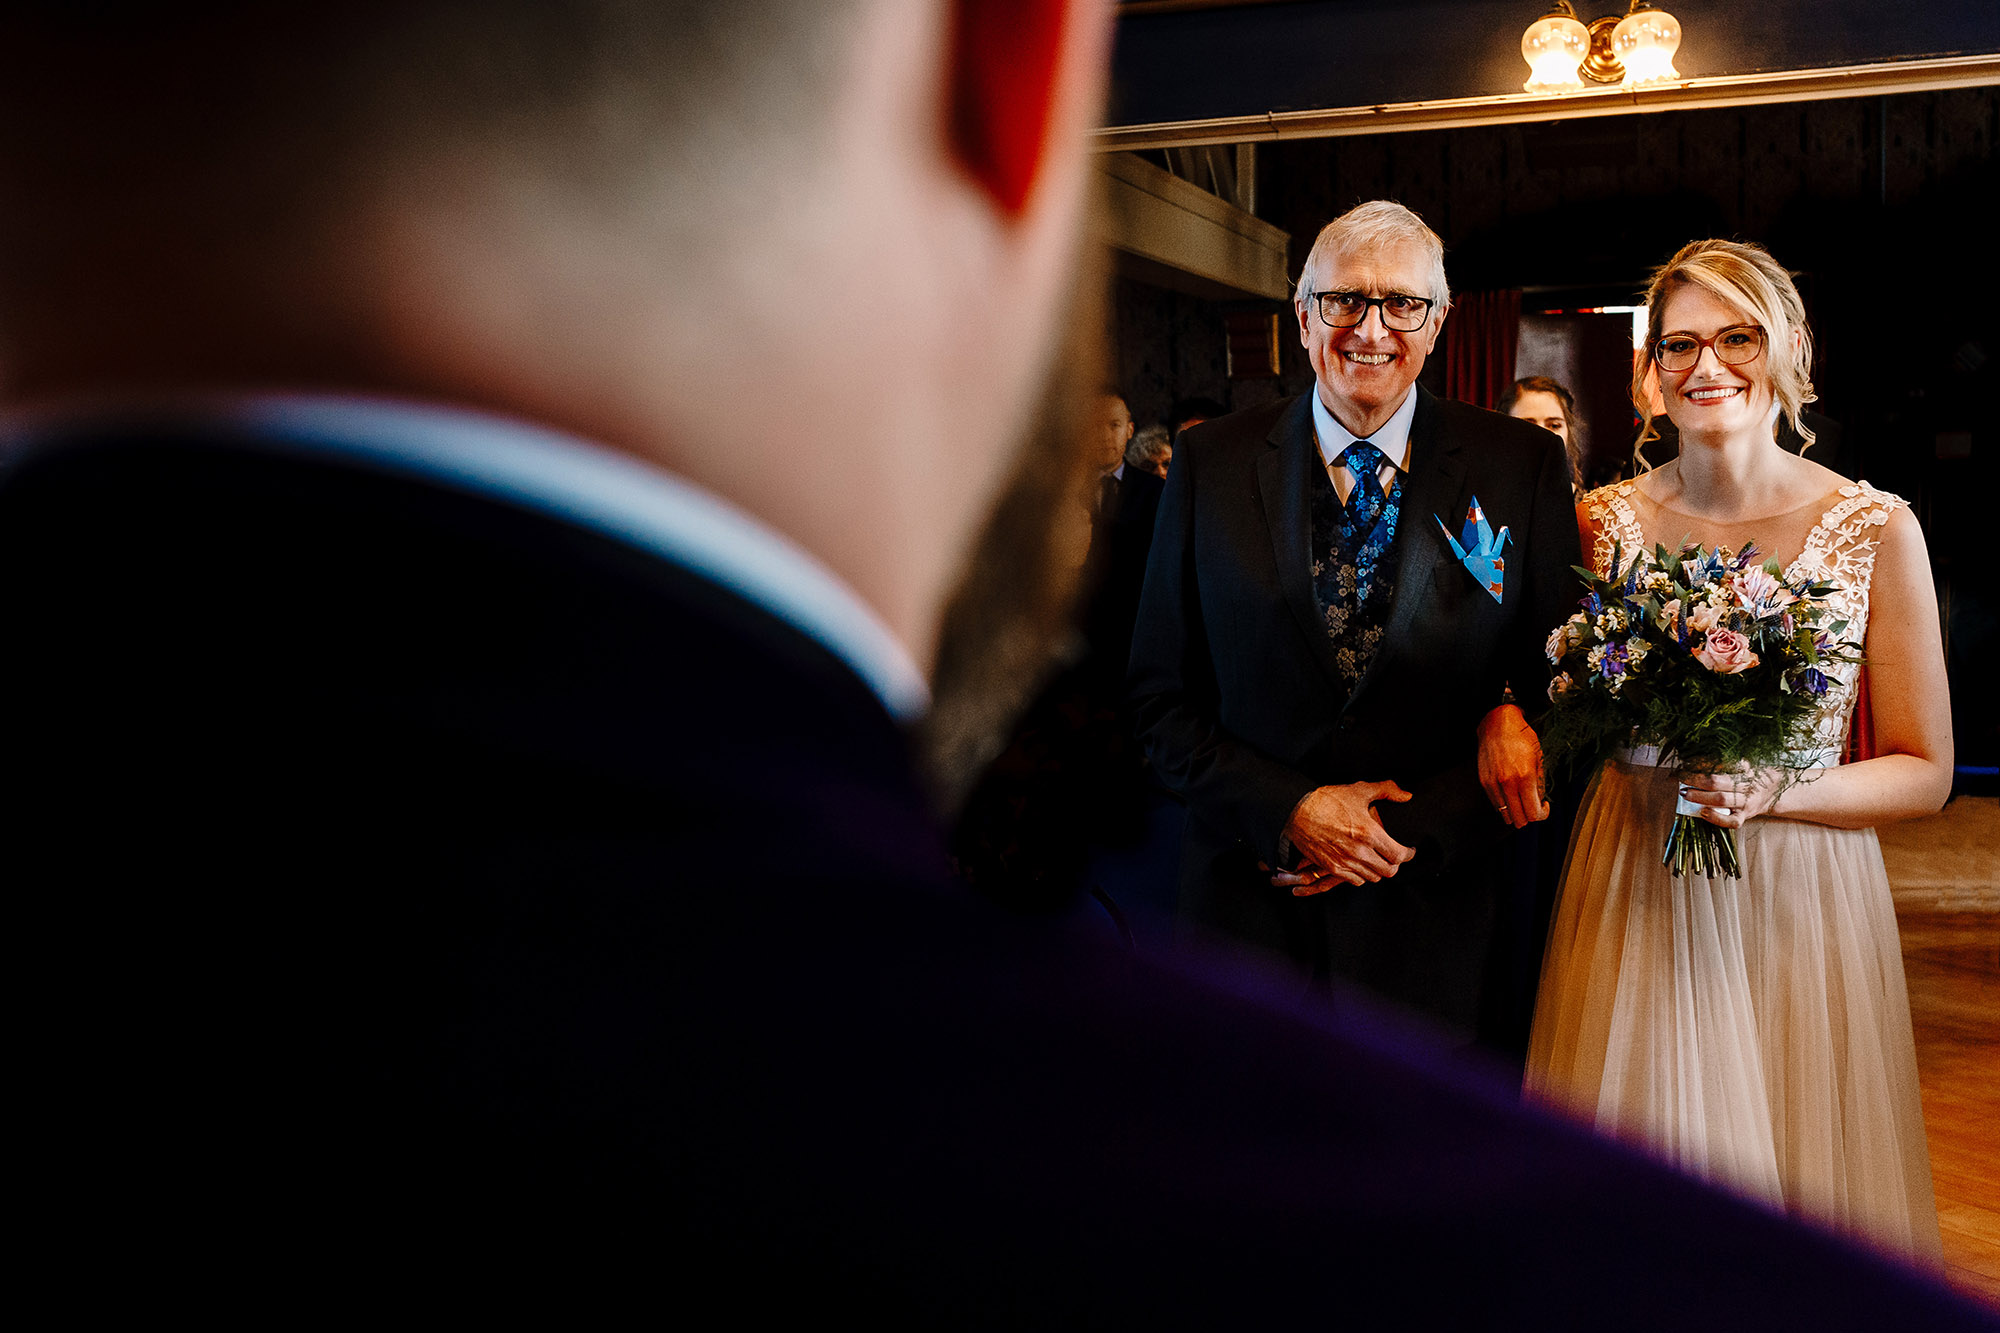 A shot from behind the groom's shoulder of a bride walking towards him with her father as they both smile